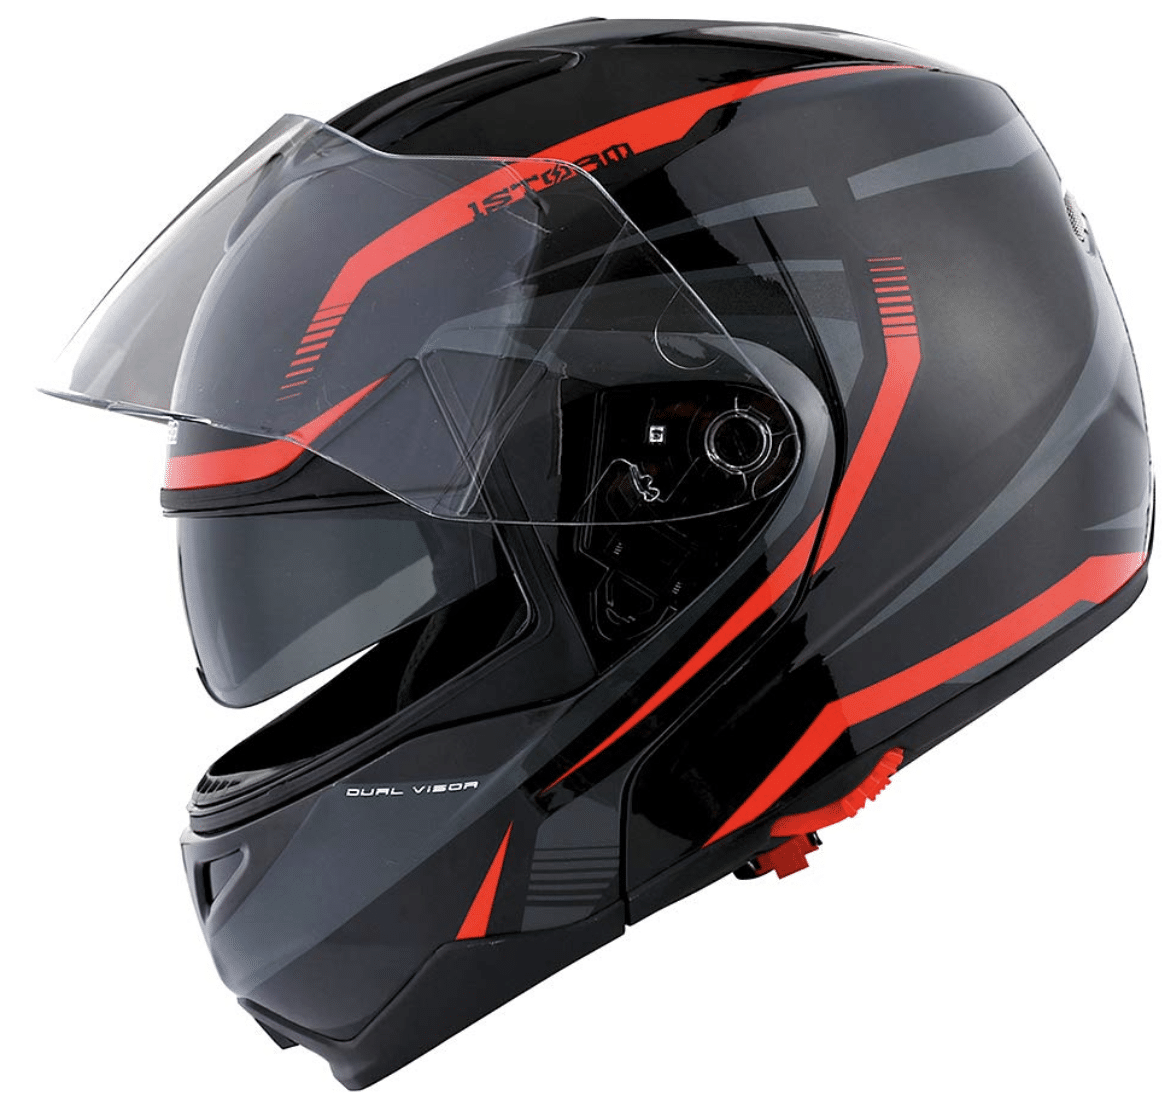 1Storm Motorcycle Street Bike Modular/Flip up Dual Visor